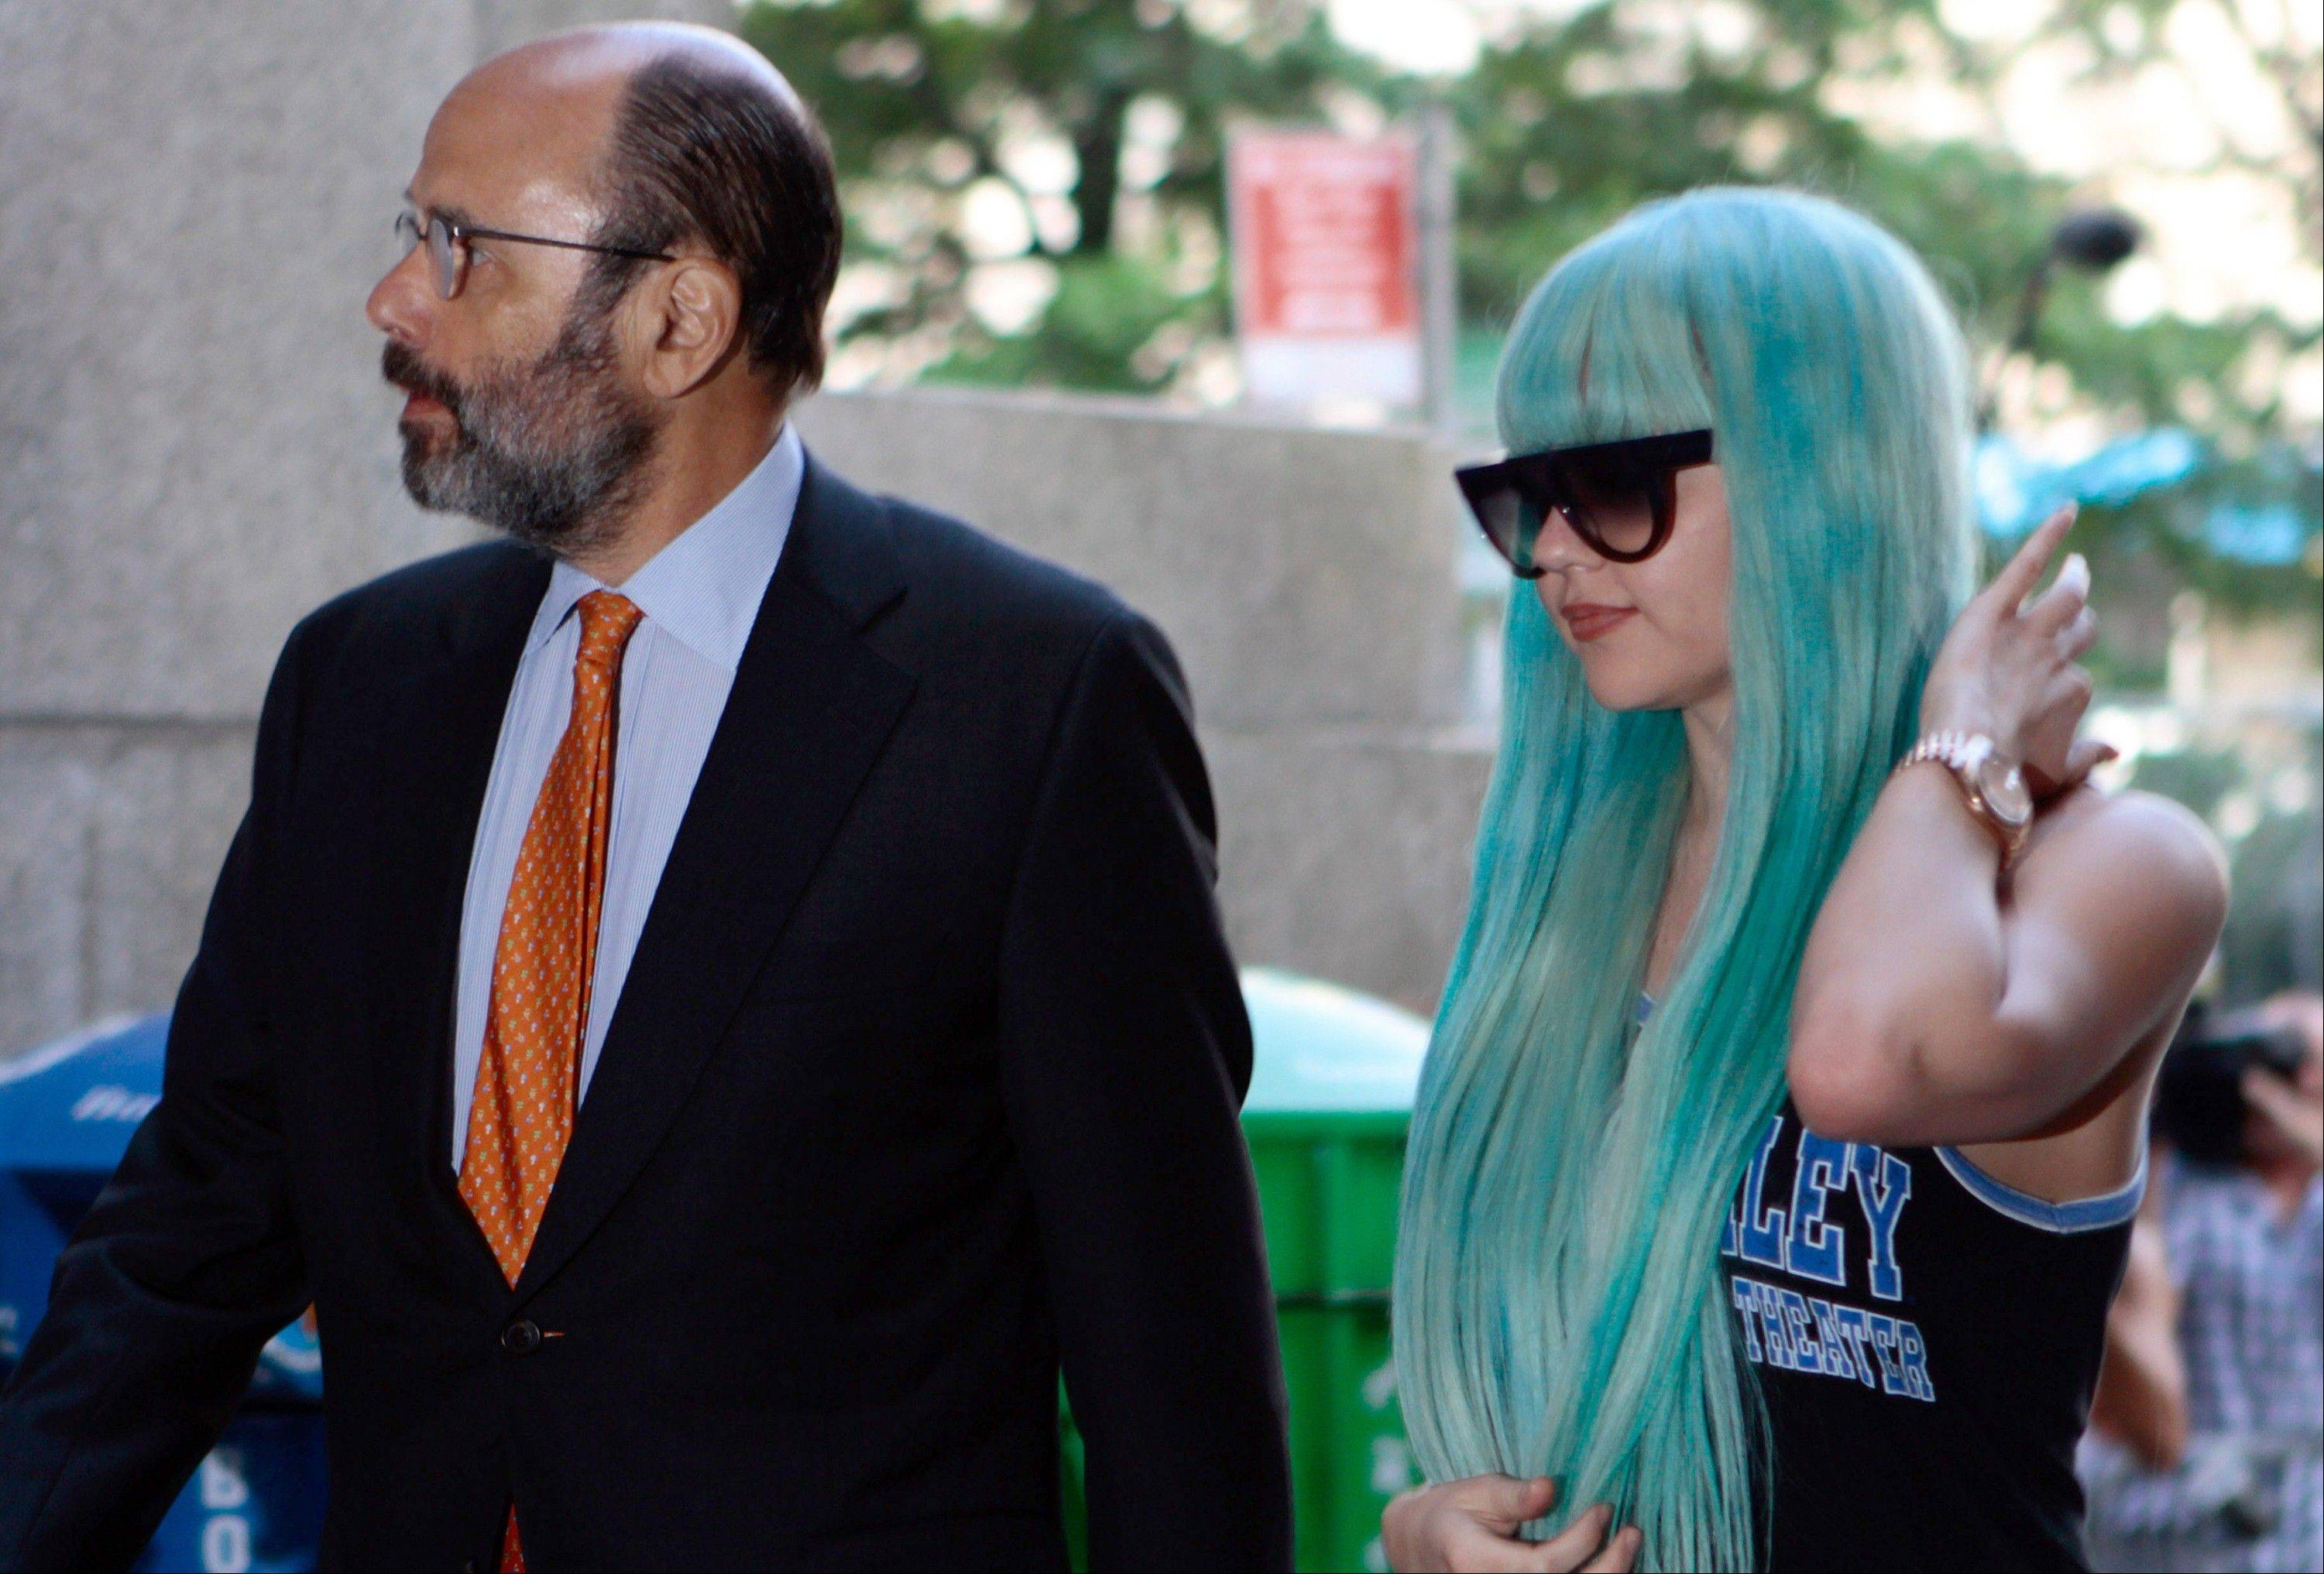 A Manhattan judge on Friday ruled that the bong-toss case against Amanda Bynes will be dismissed if she stays out of trouble for six months and goes to counseling.